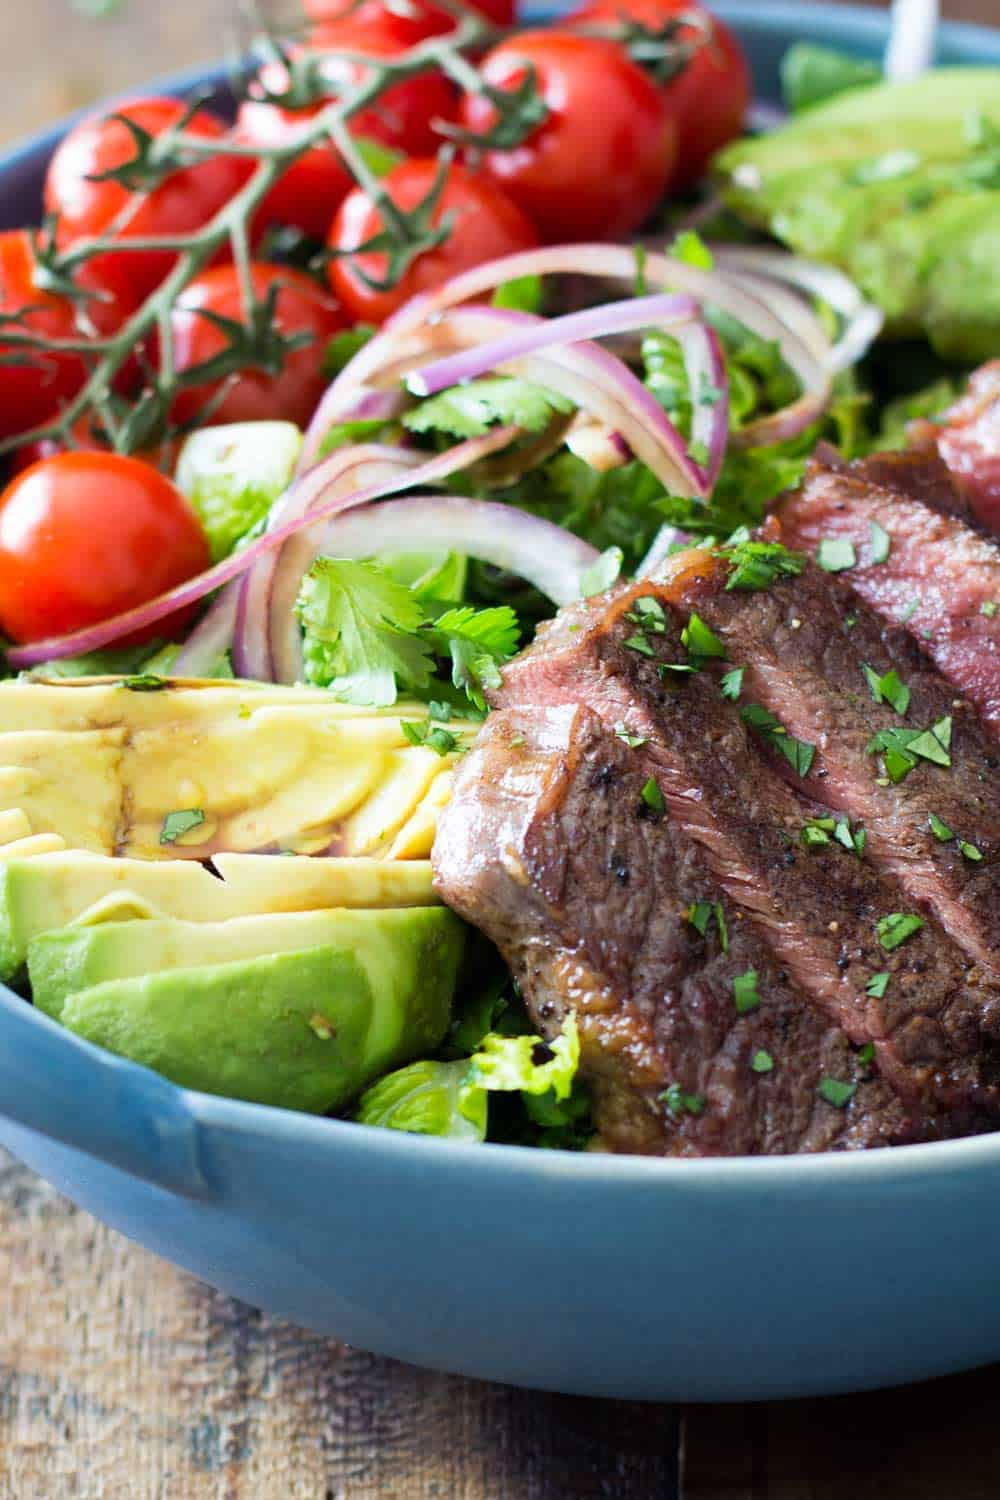 Strip loin steak salad with avocado, cherry tomatoes, cilantro and onions served in a blue bowl.